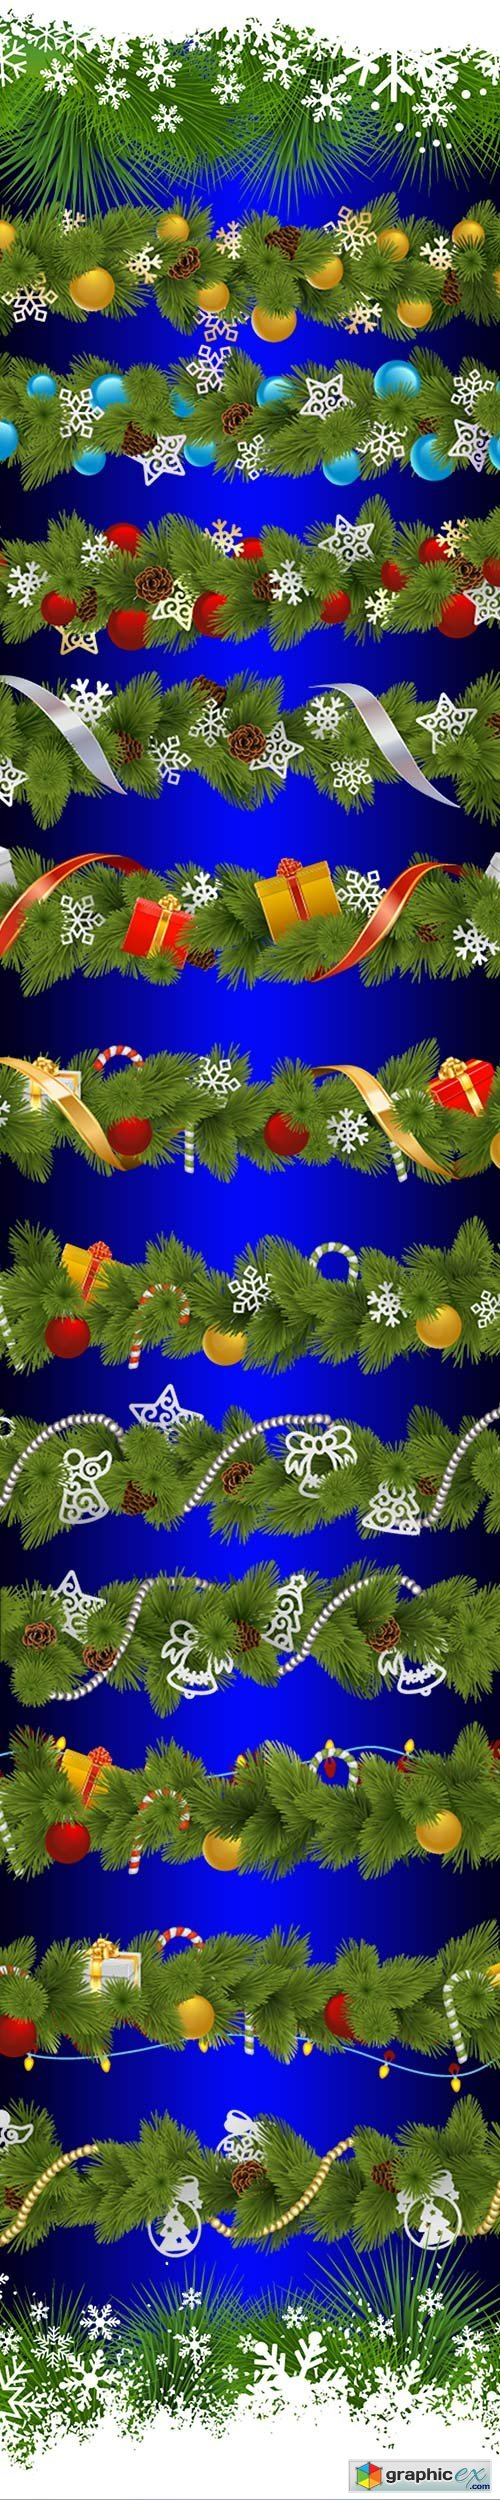 Christmas borders on a transparent background